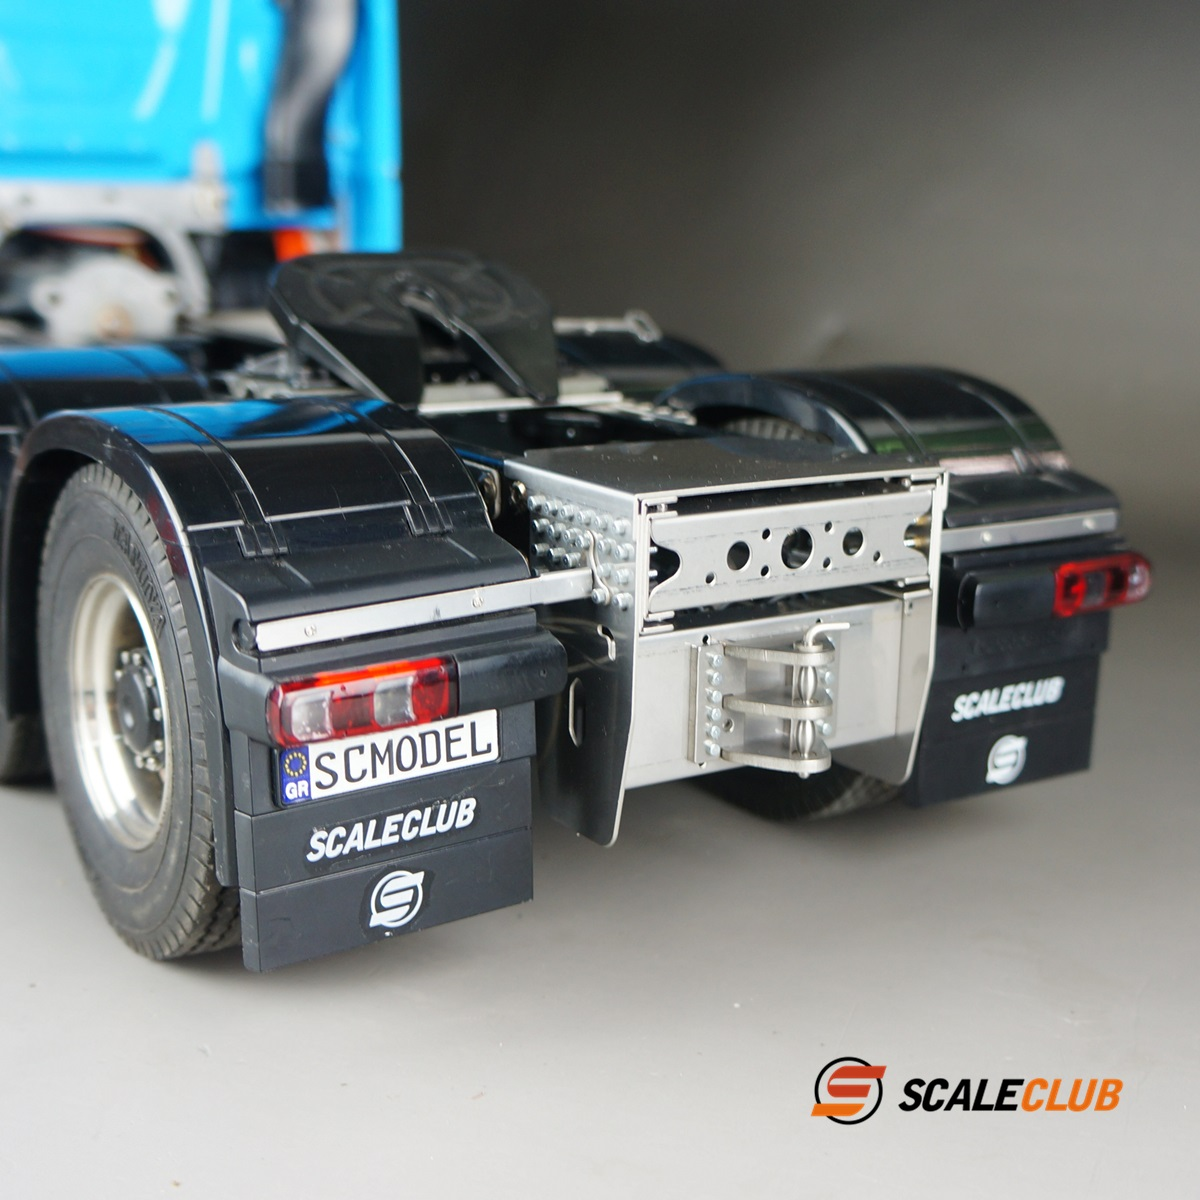 SCALECLUB  Benz ACTROS 3363/1851  Trailer coupler with rear tail beam